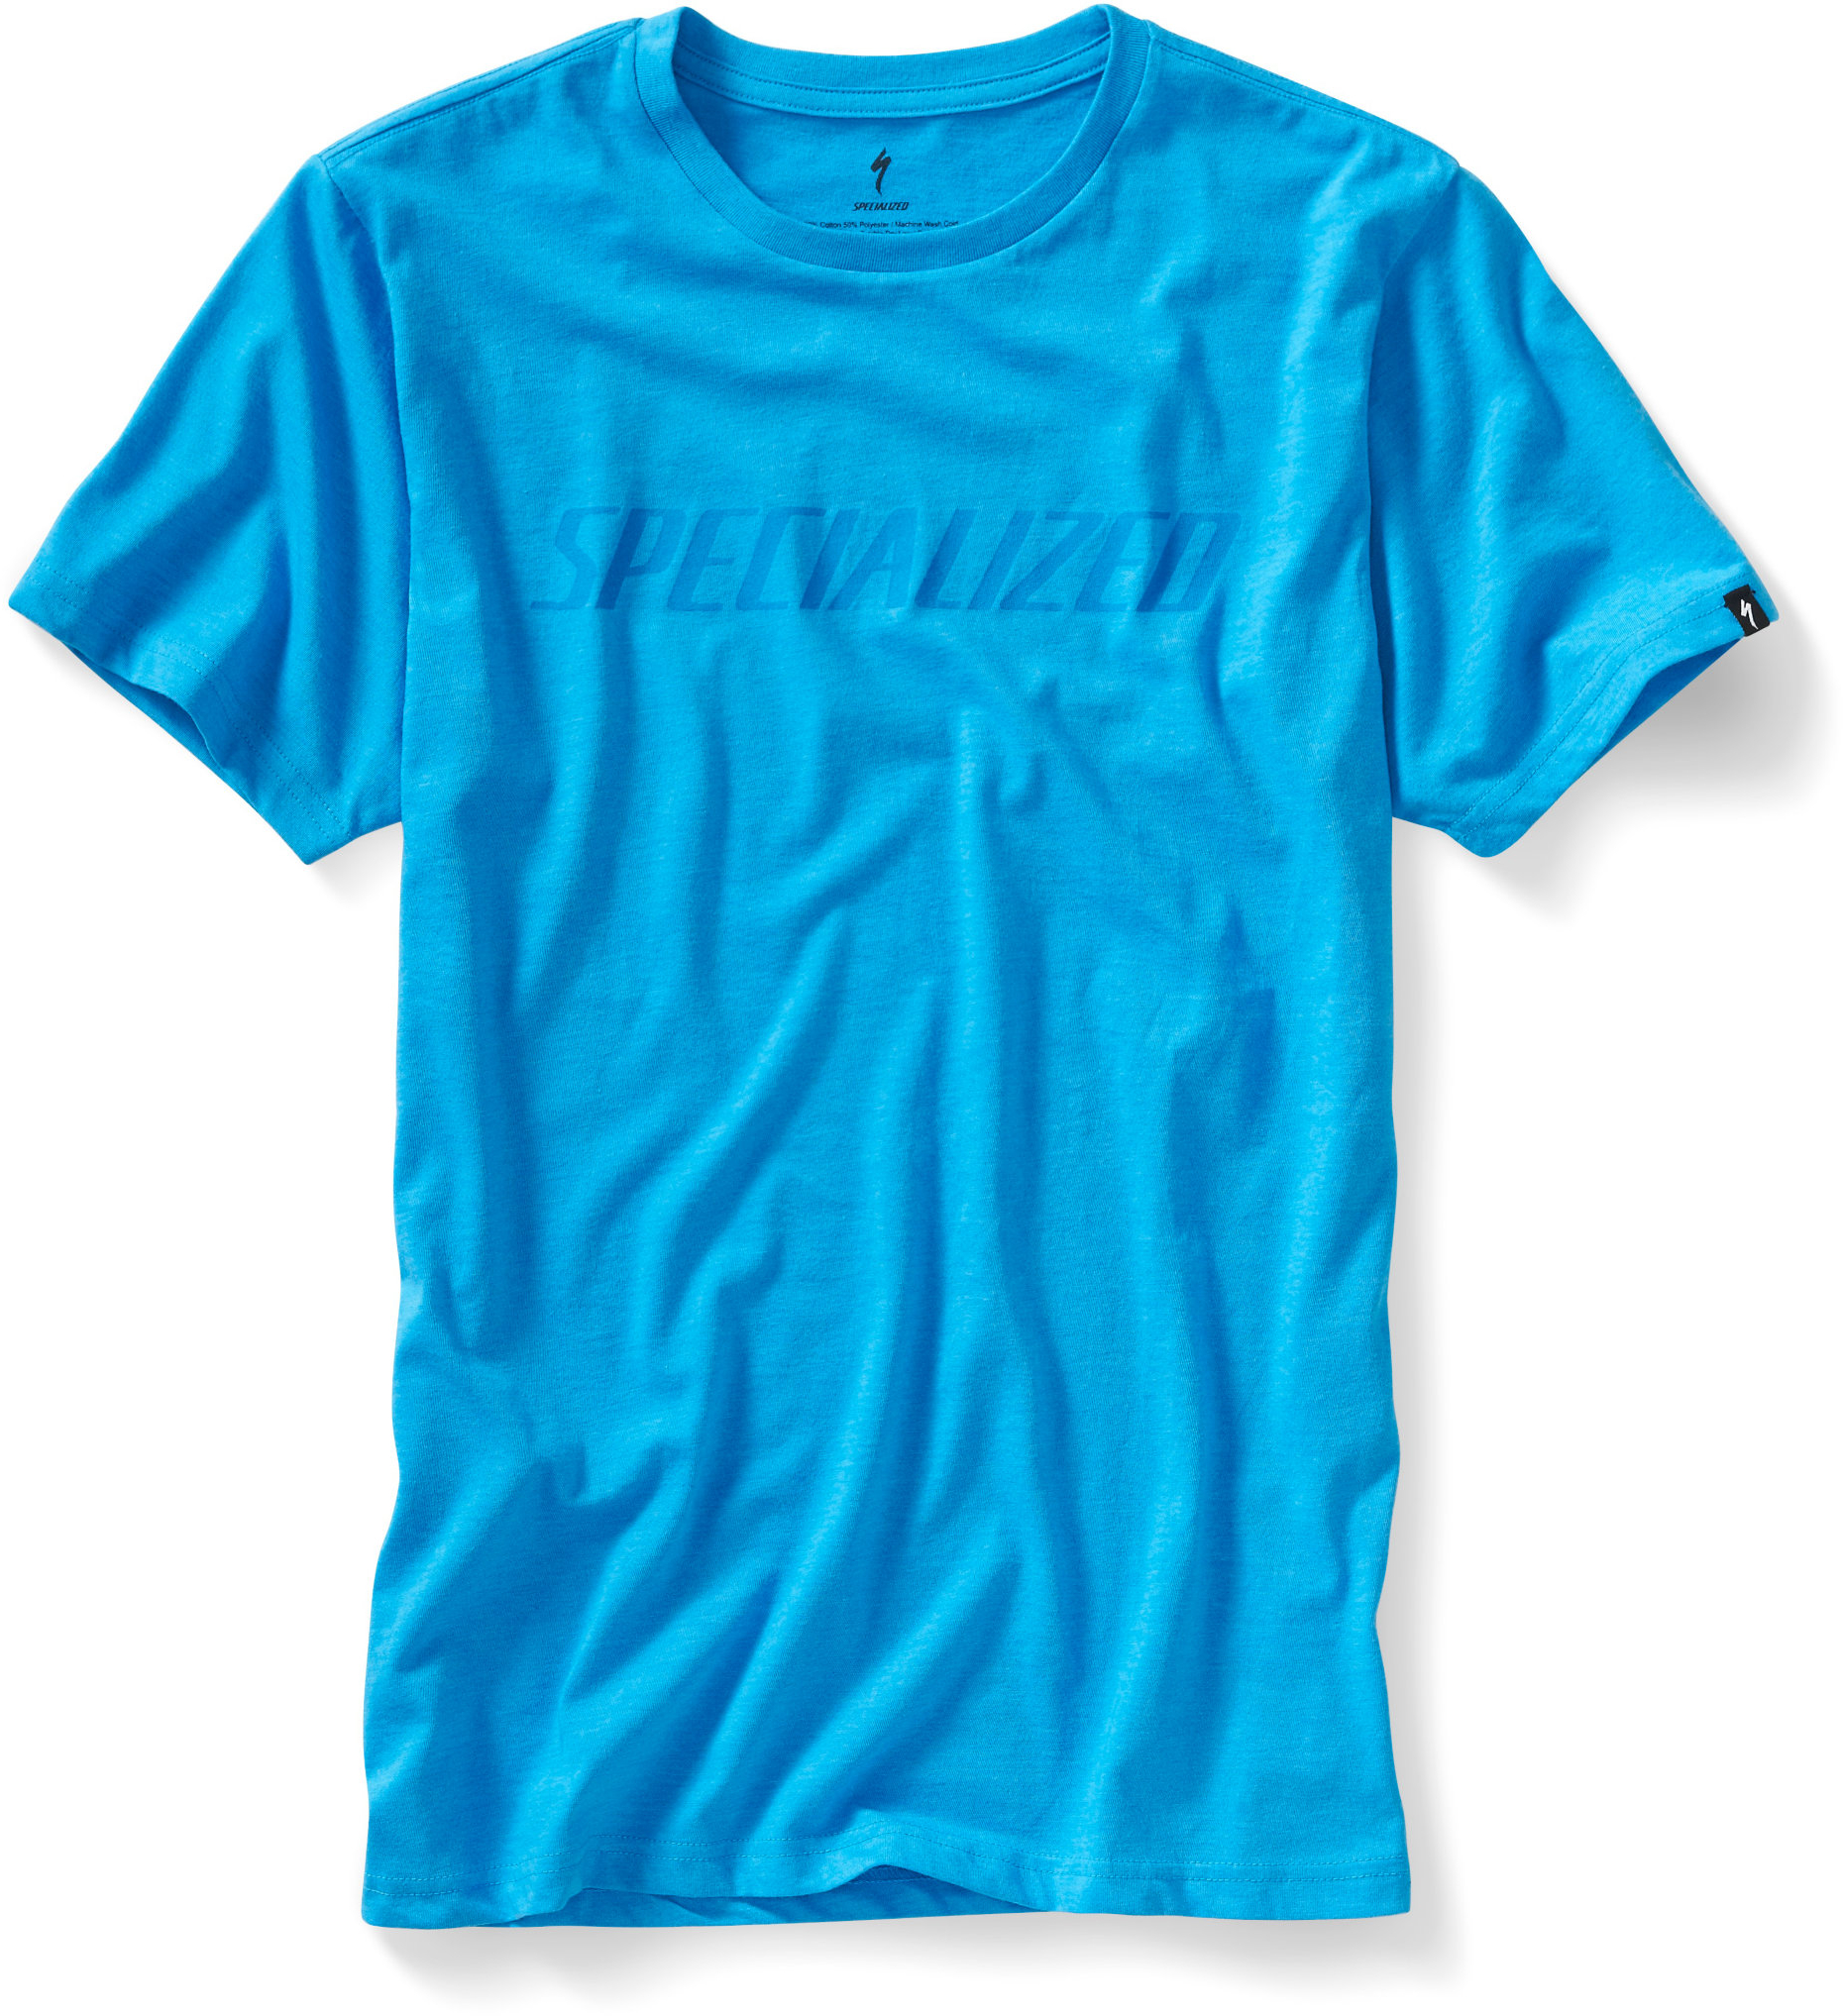 c3f3394ea6c 2017 Specialized Specialized Podium Short Sleeve T-Shirt - Specialized  Concept Store